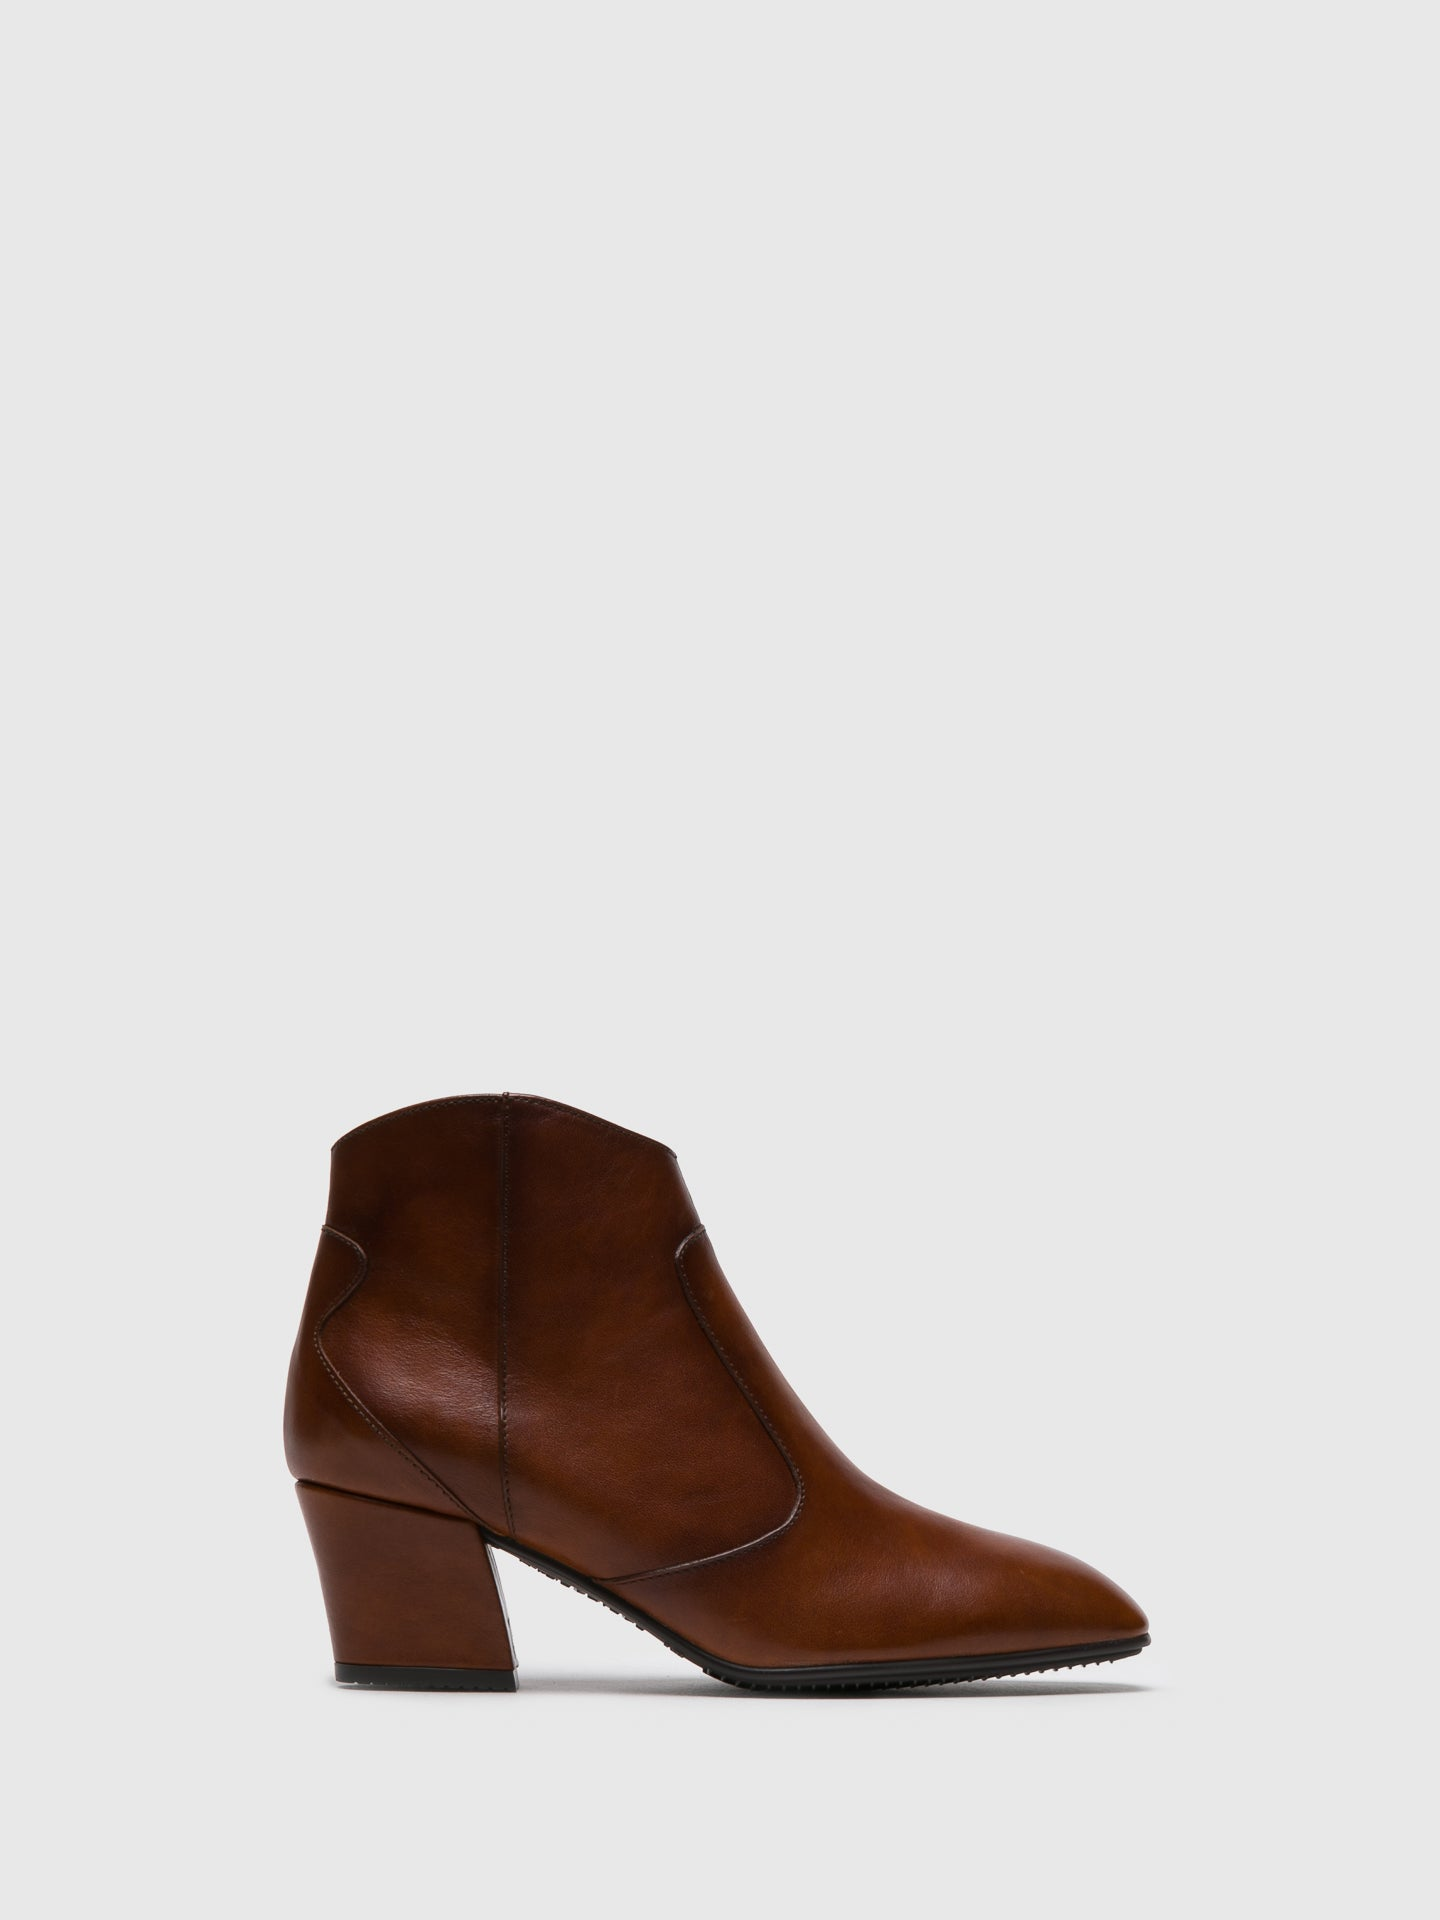 Hispanitas SaddleBrown Zip up Ankle Boots